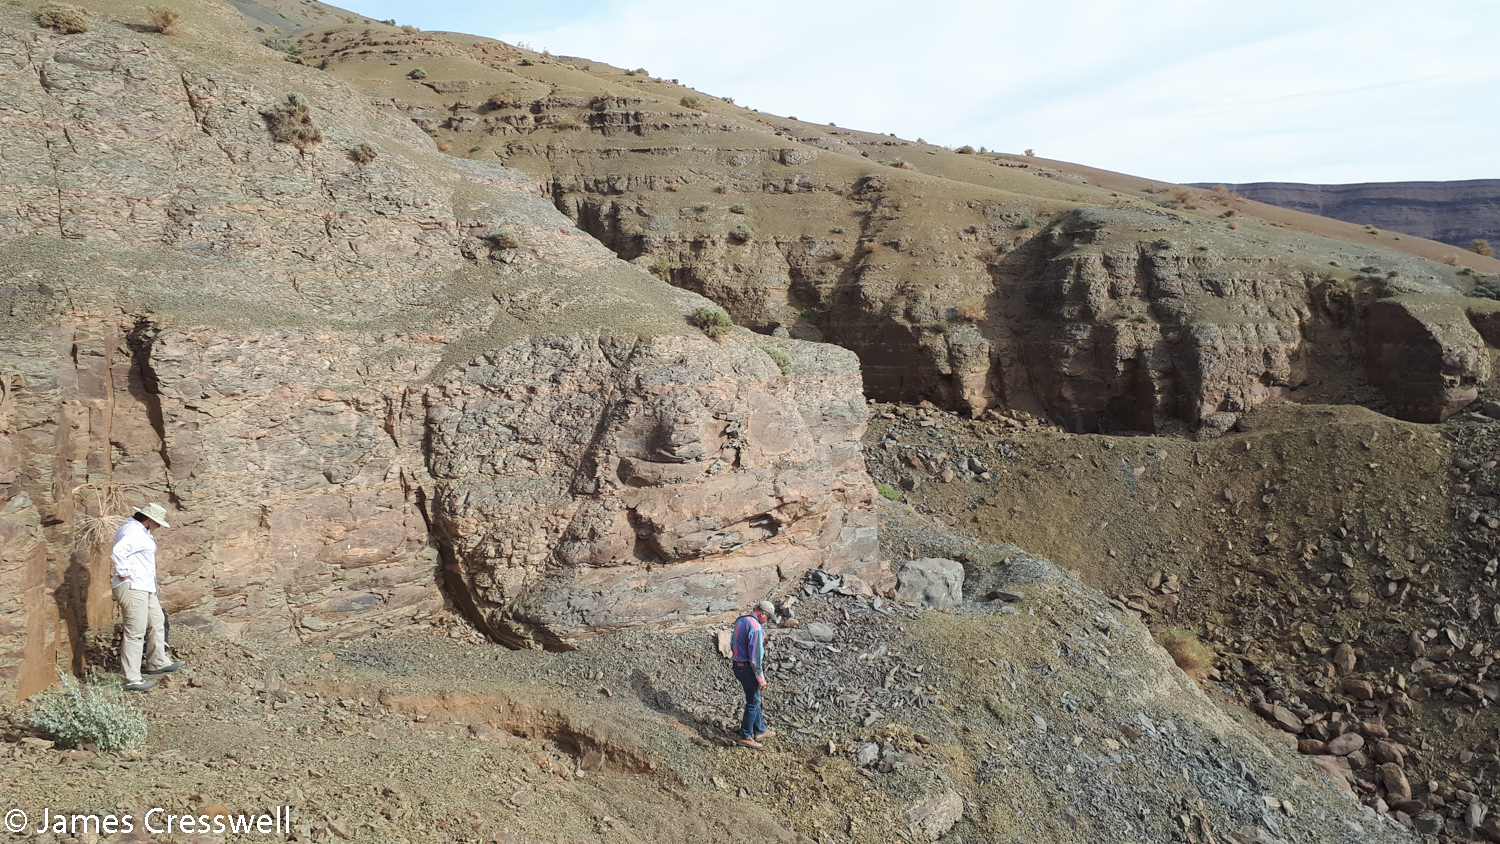 People by cliff with trilobite diggings